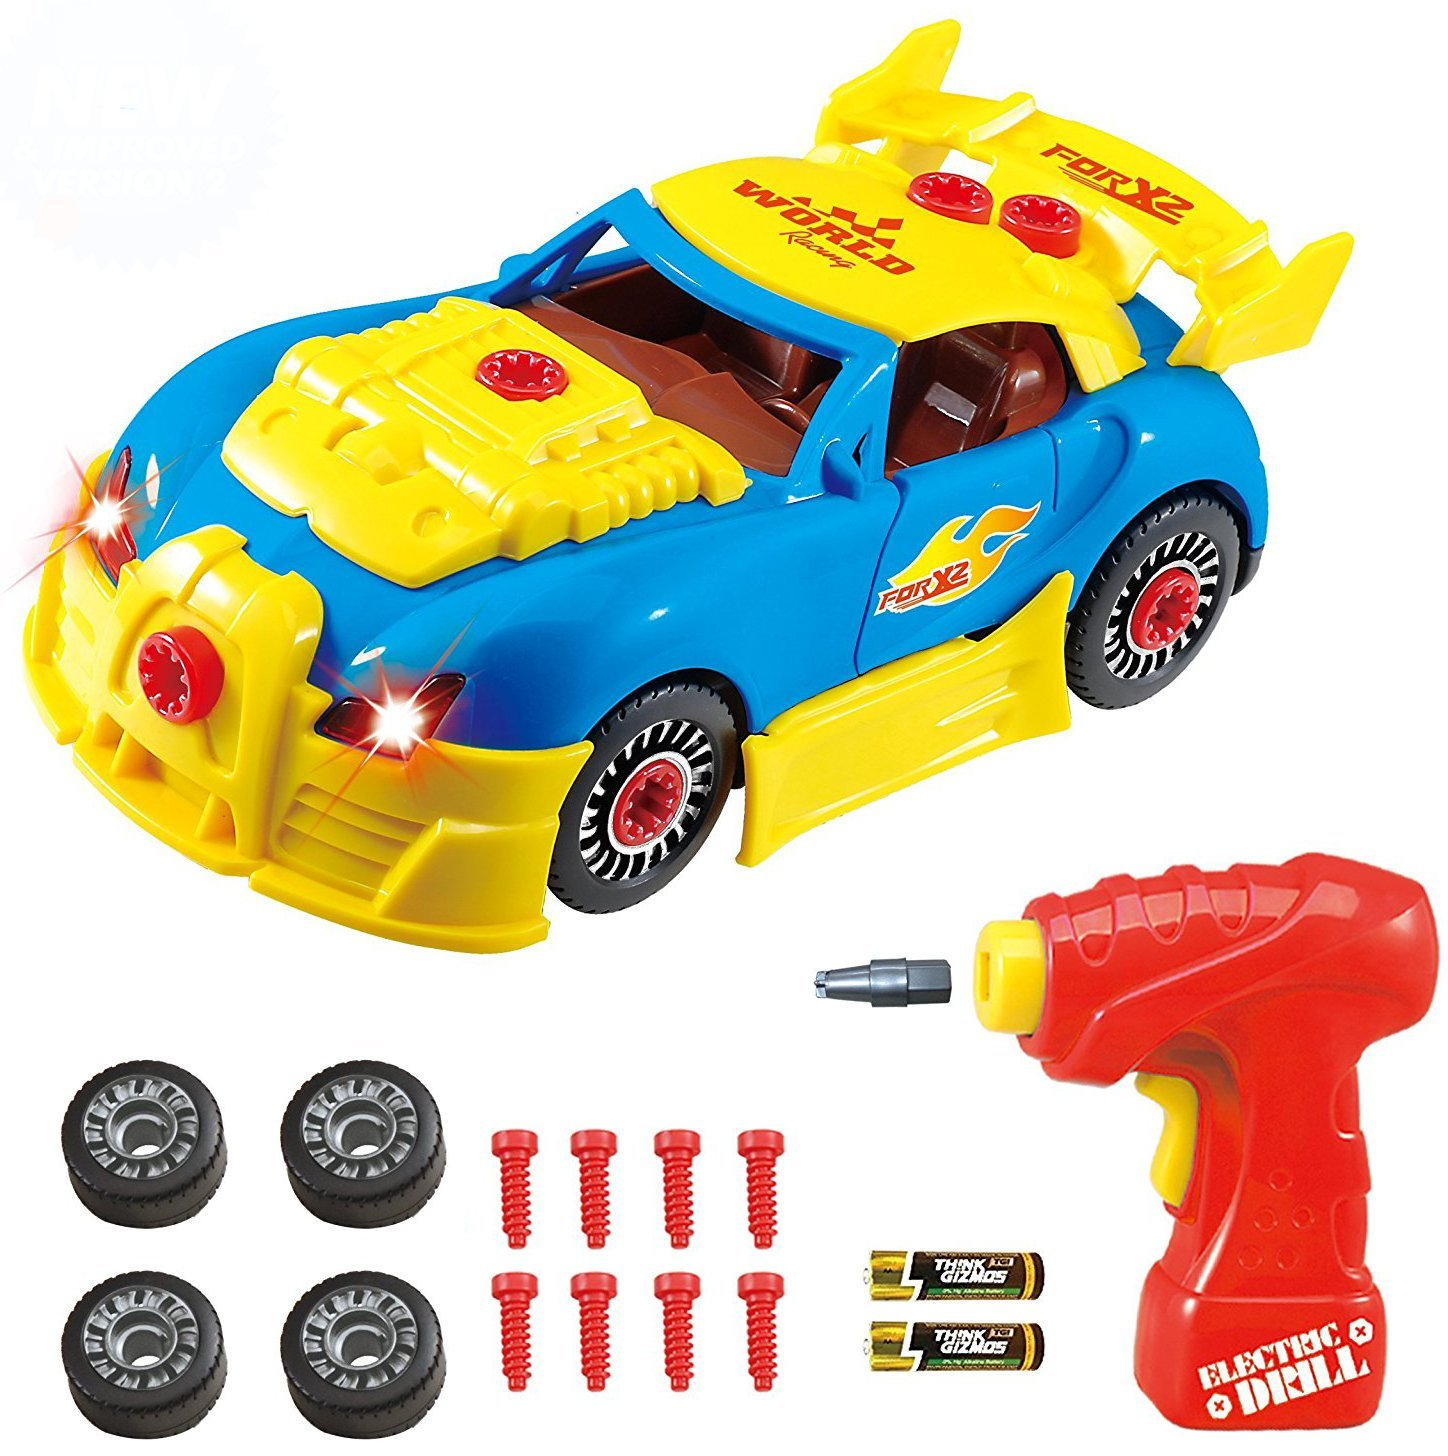 For The Little Car Lovers This Brightly Colored Race Will Keep Those Curious Hands Busy They Can Fully Disassemble And Reassemble With